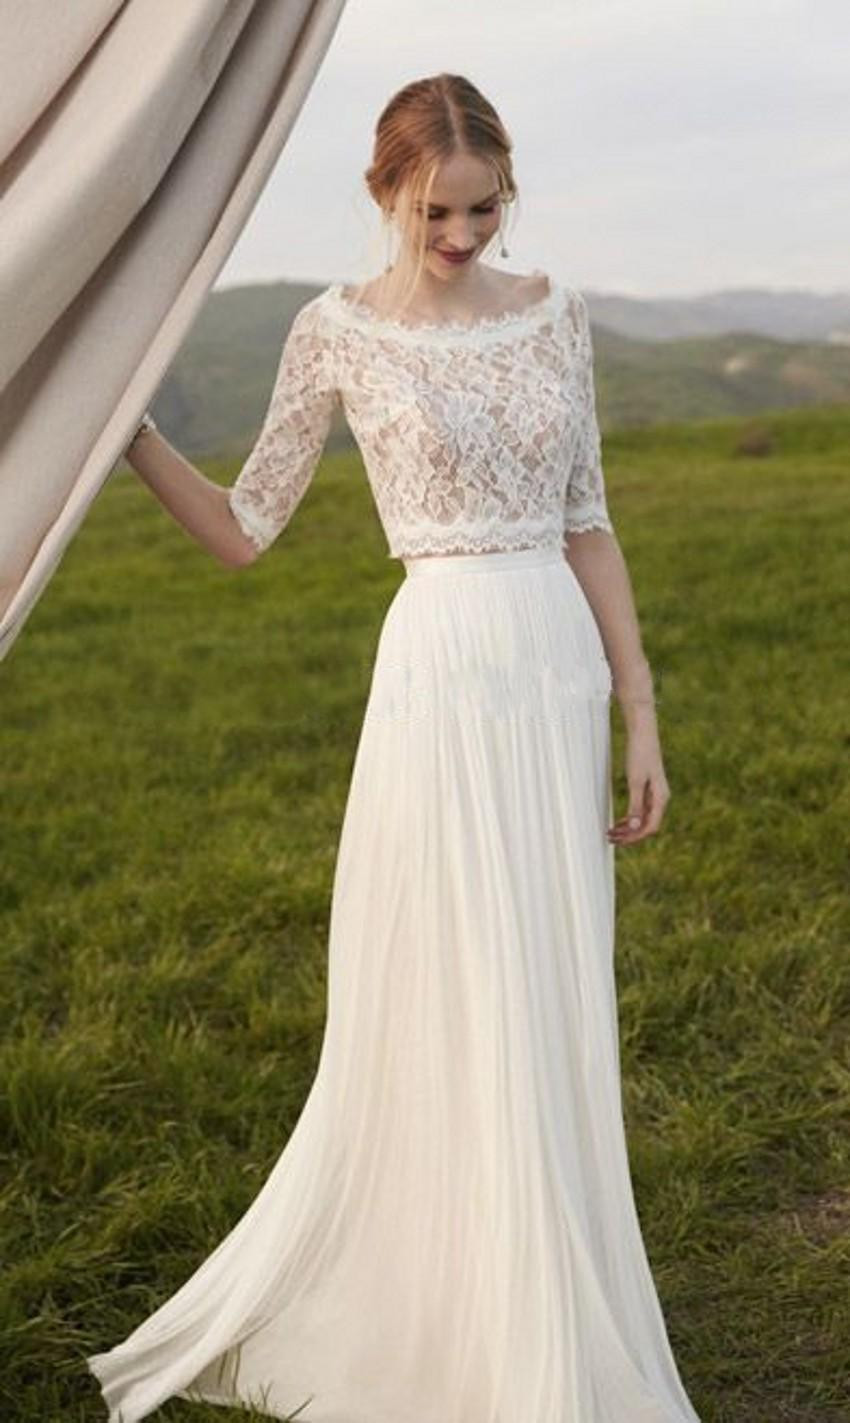 Popular simple winter wedding dresses buy cheap simple for Winter style wedding dresses